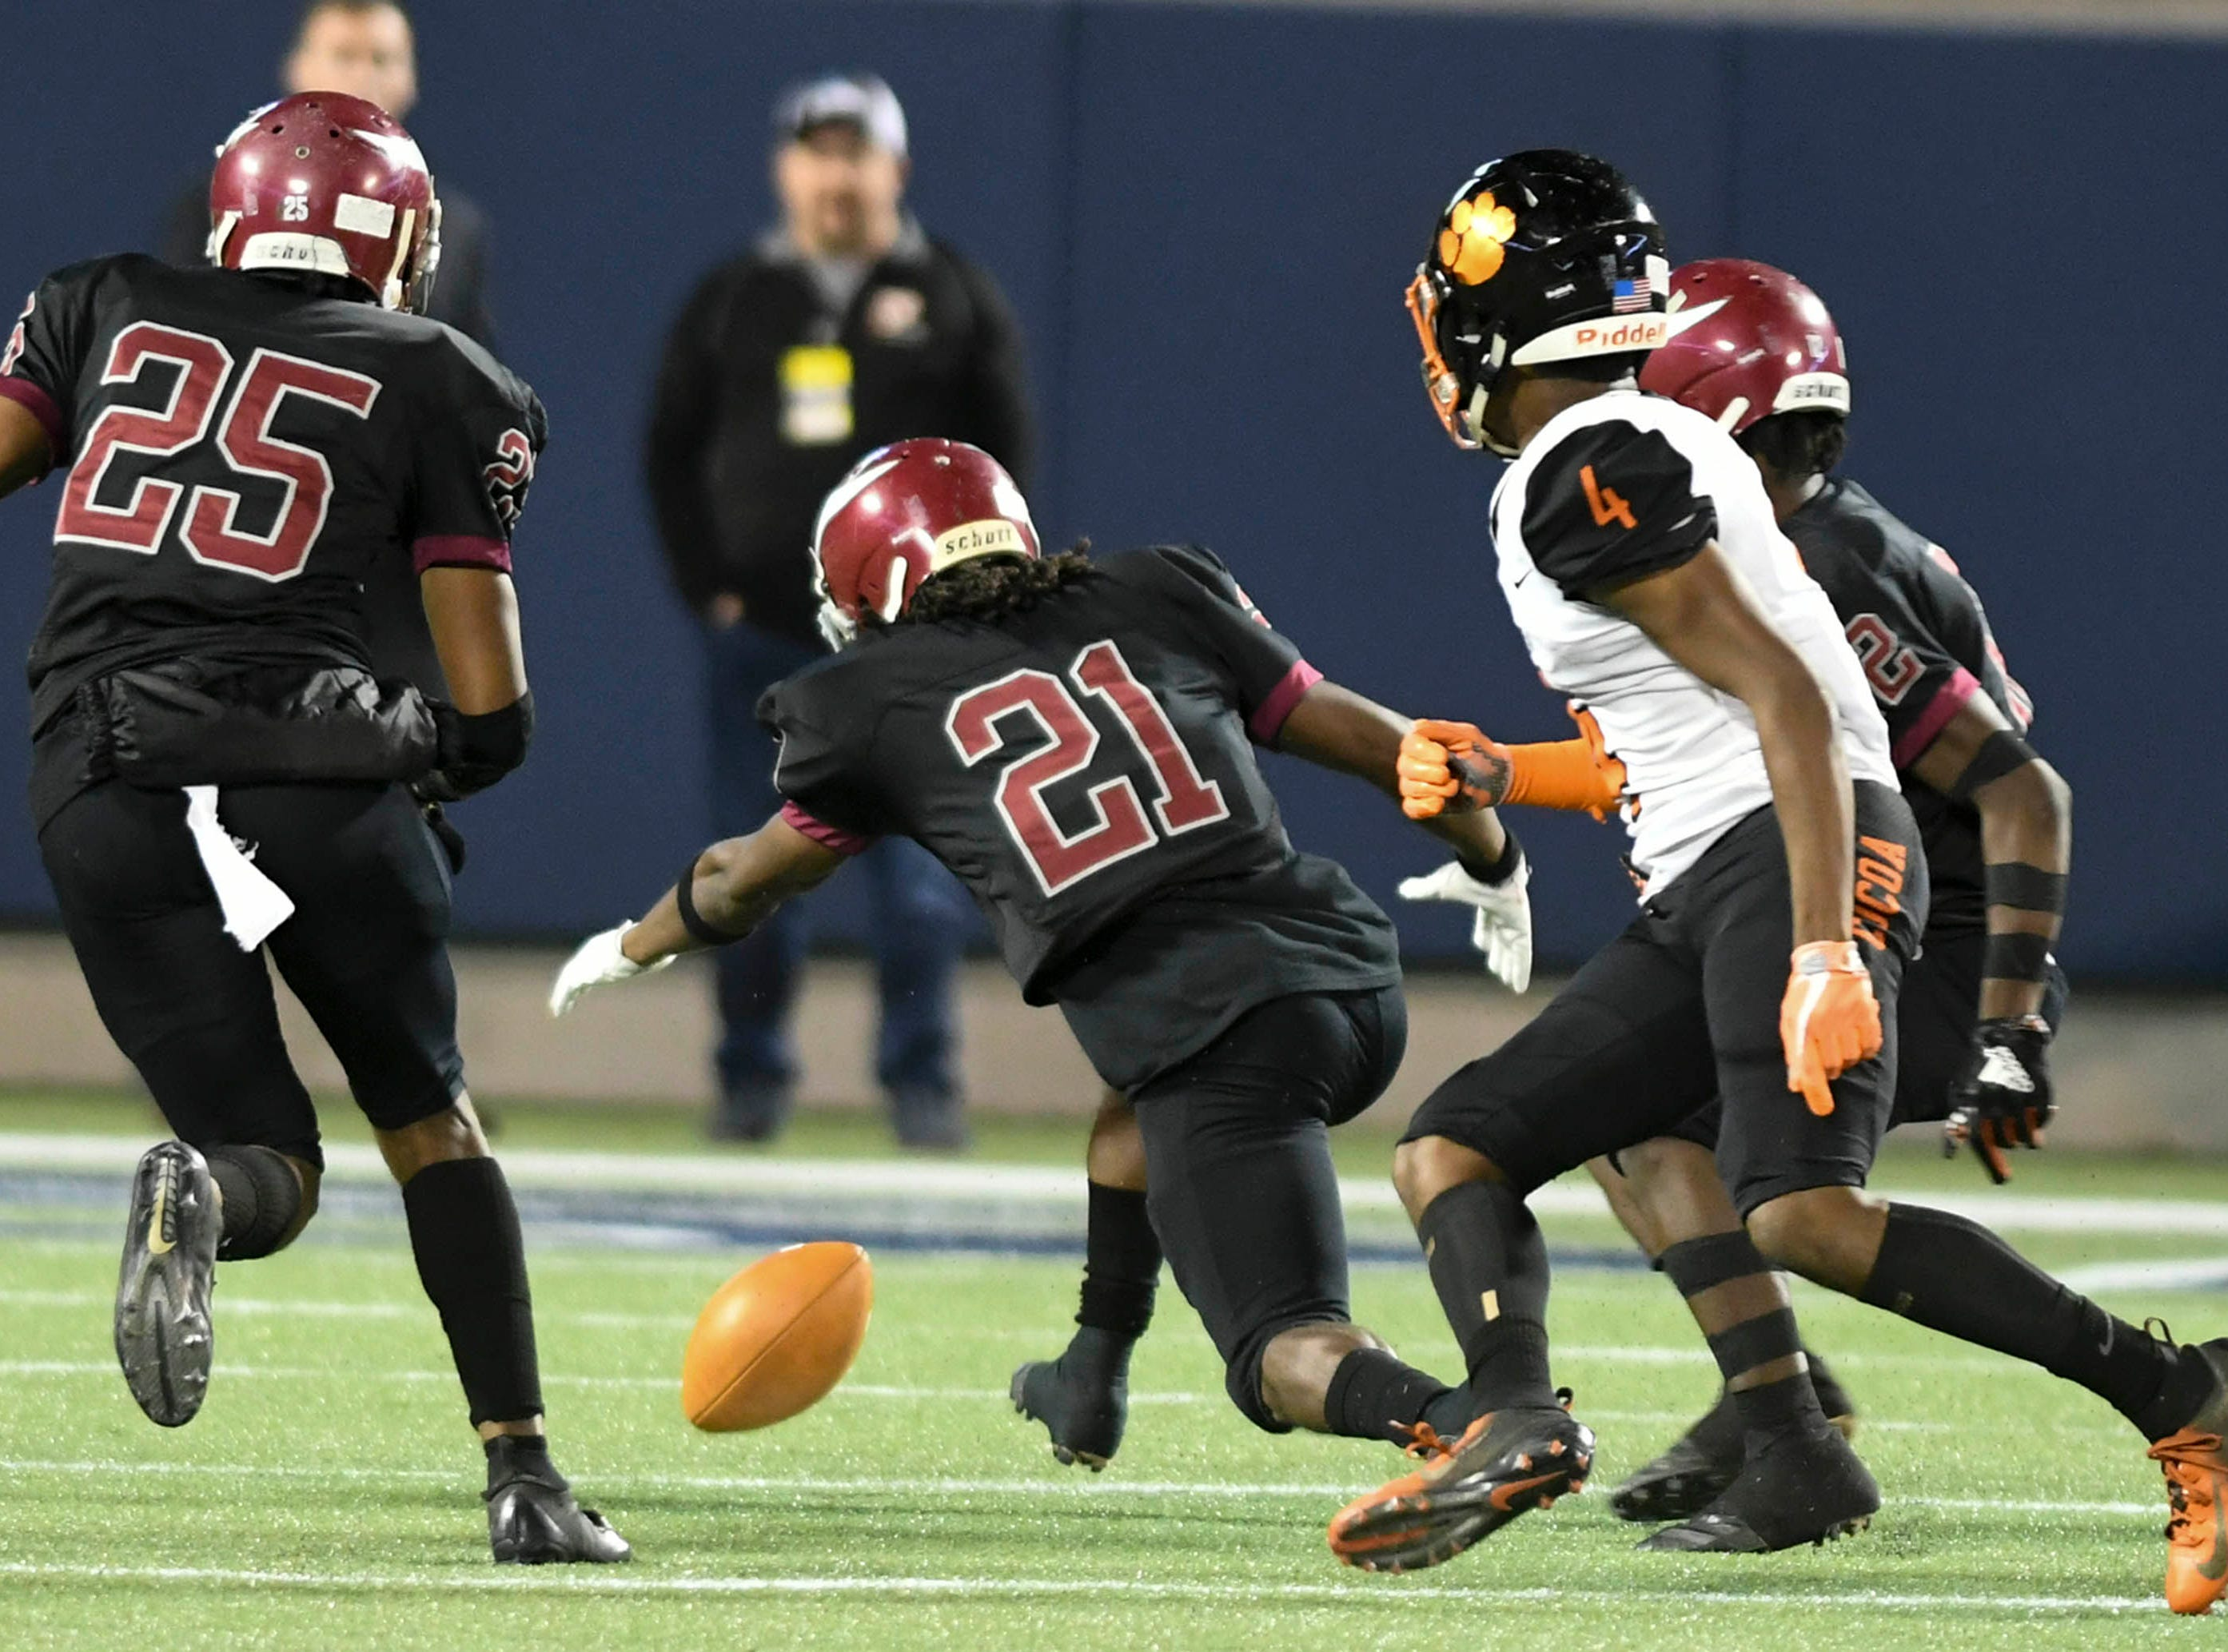 Nazario Jones of Raines (21) falls on a Willie Gaines fumble during Thursday's Class 4A football state championship.